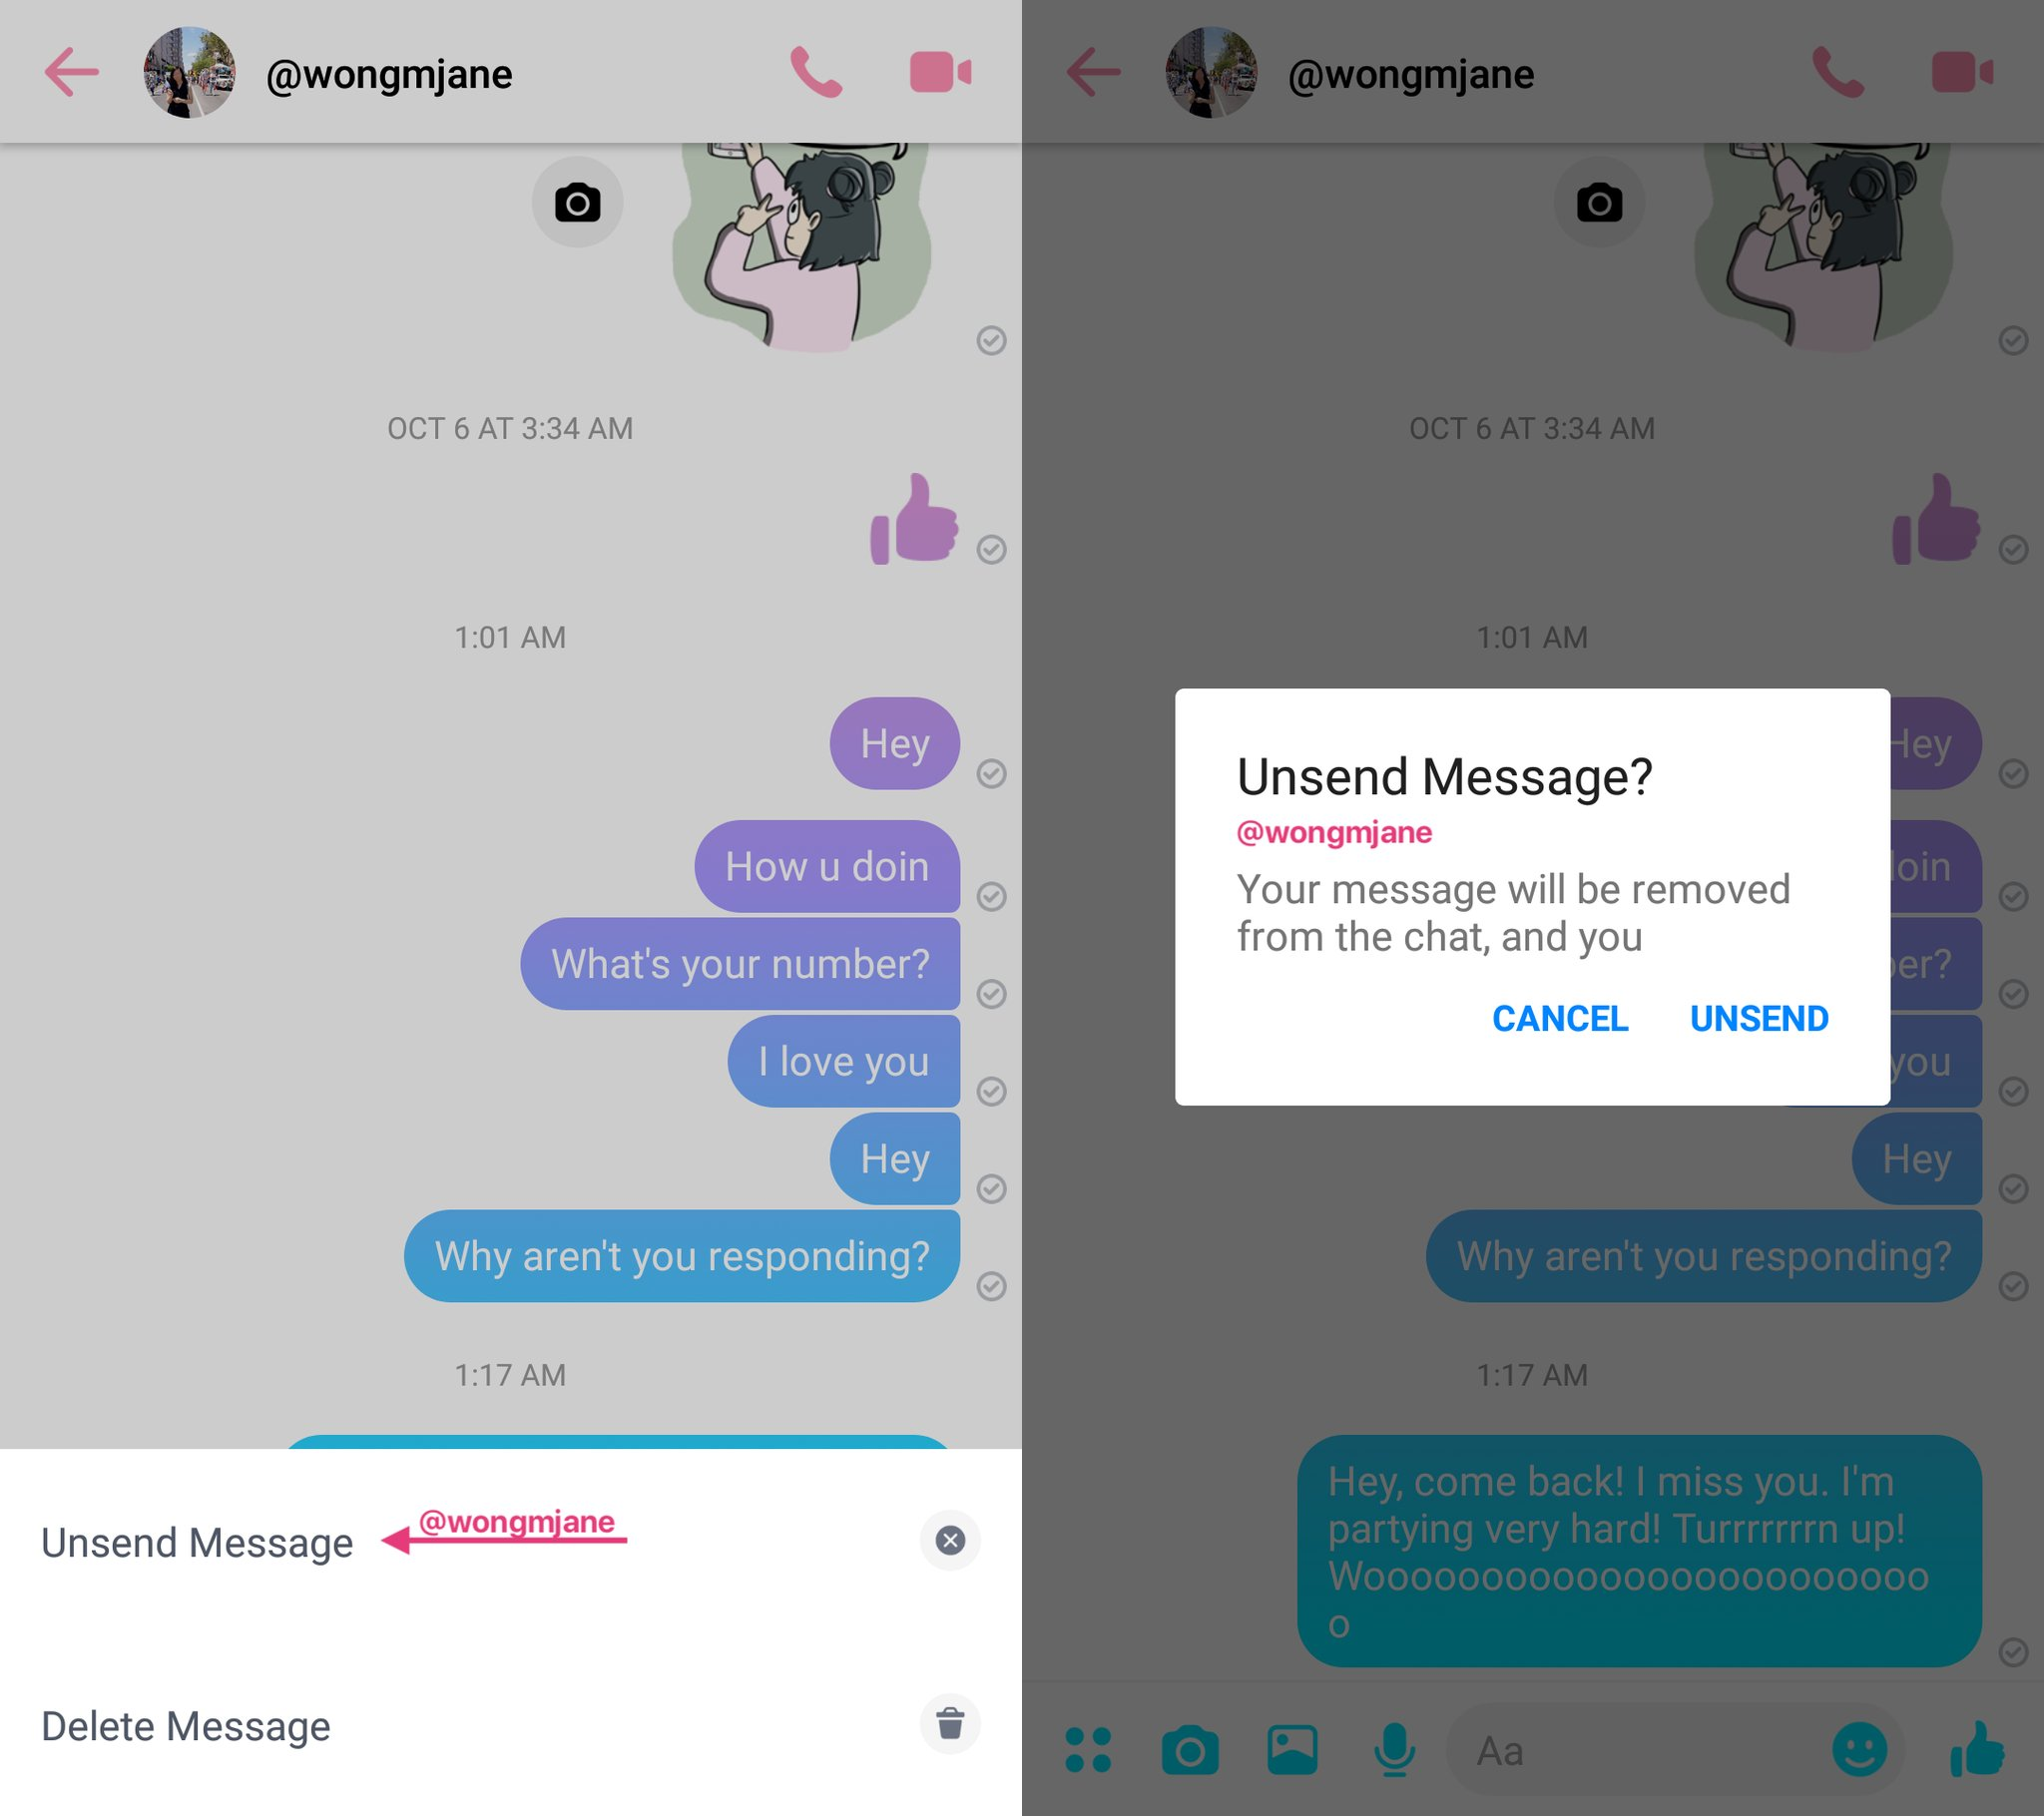 Facebook has finally begun testing the ability to unsend messages on Messenger